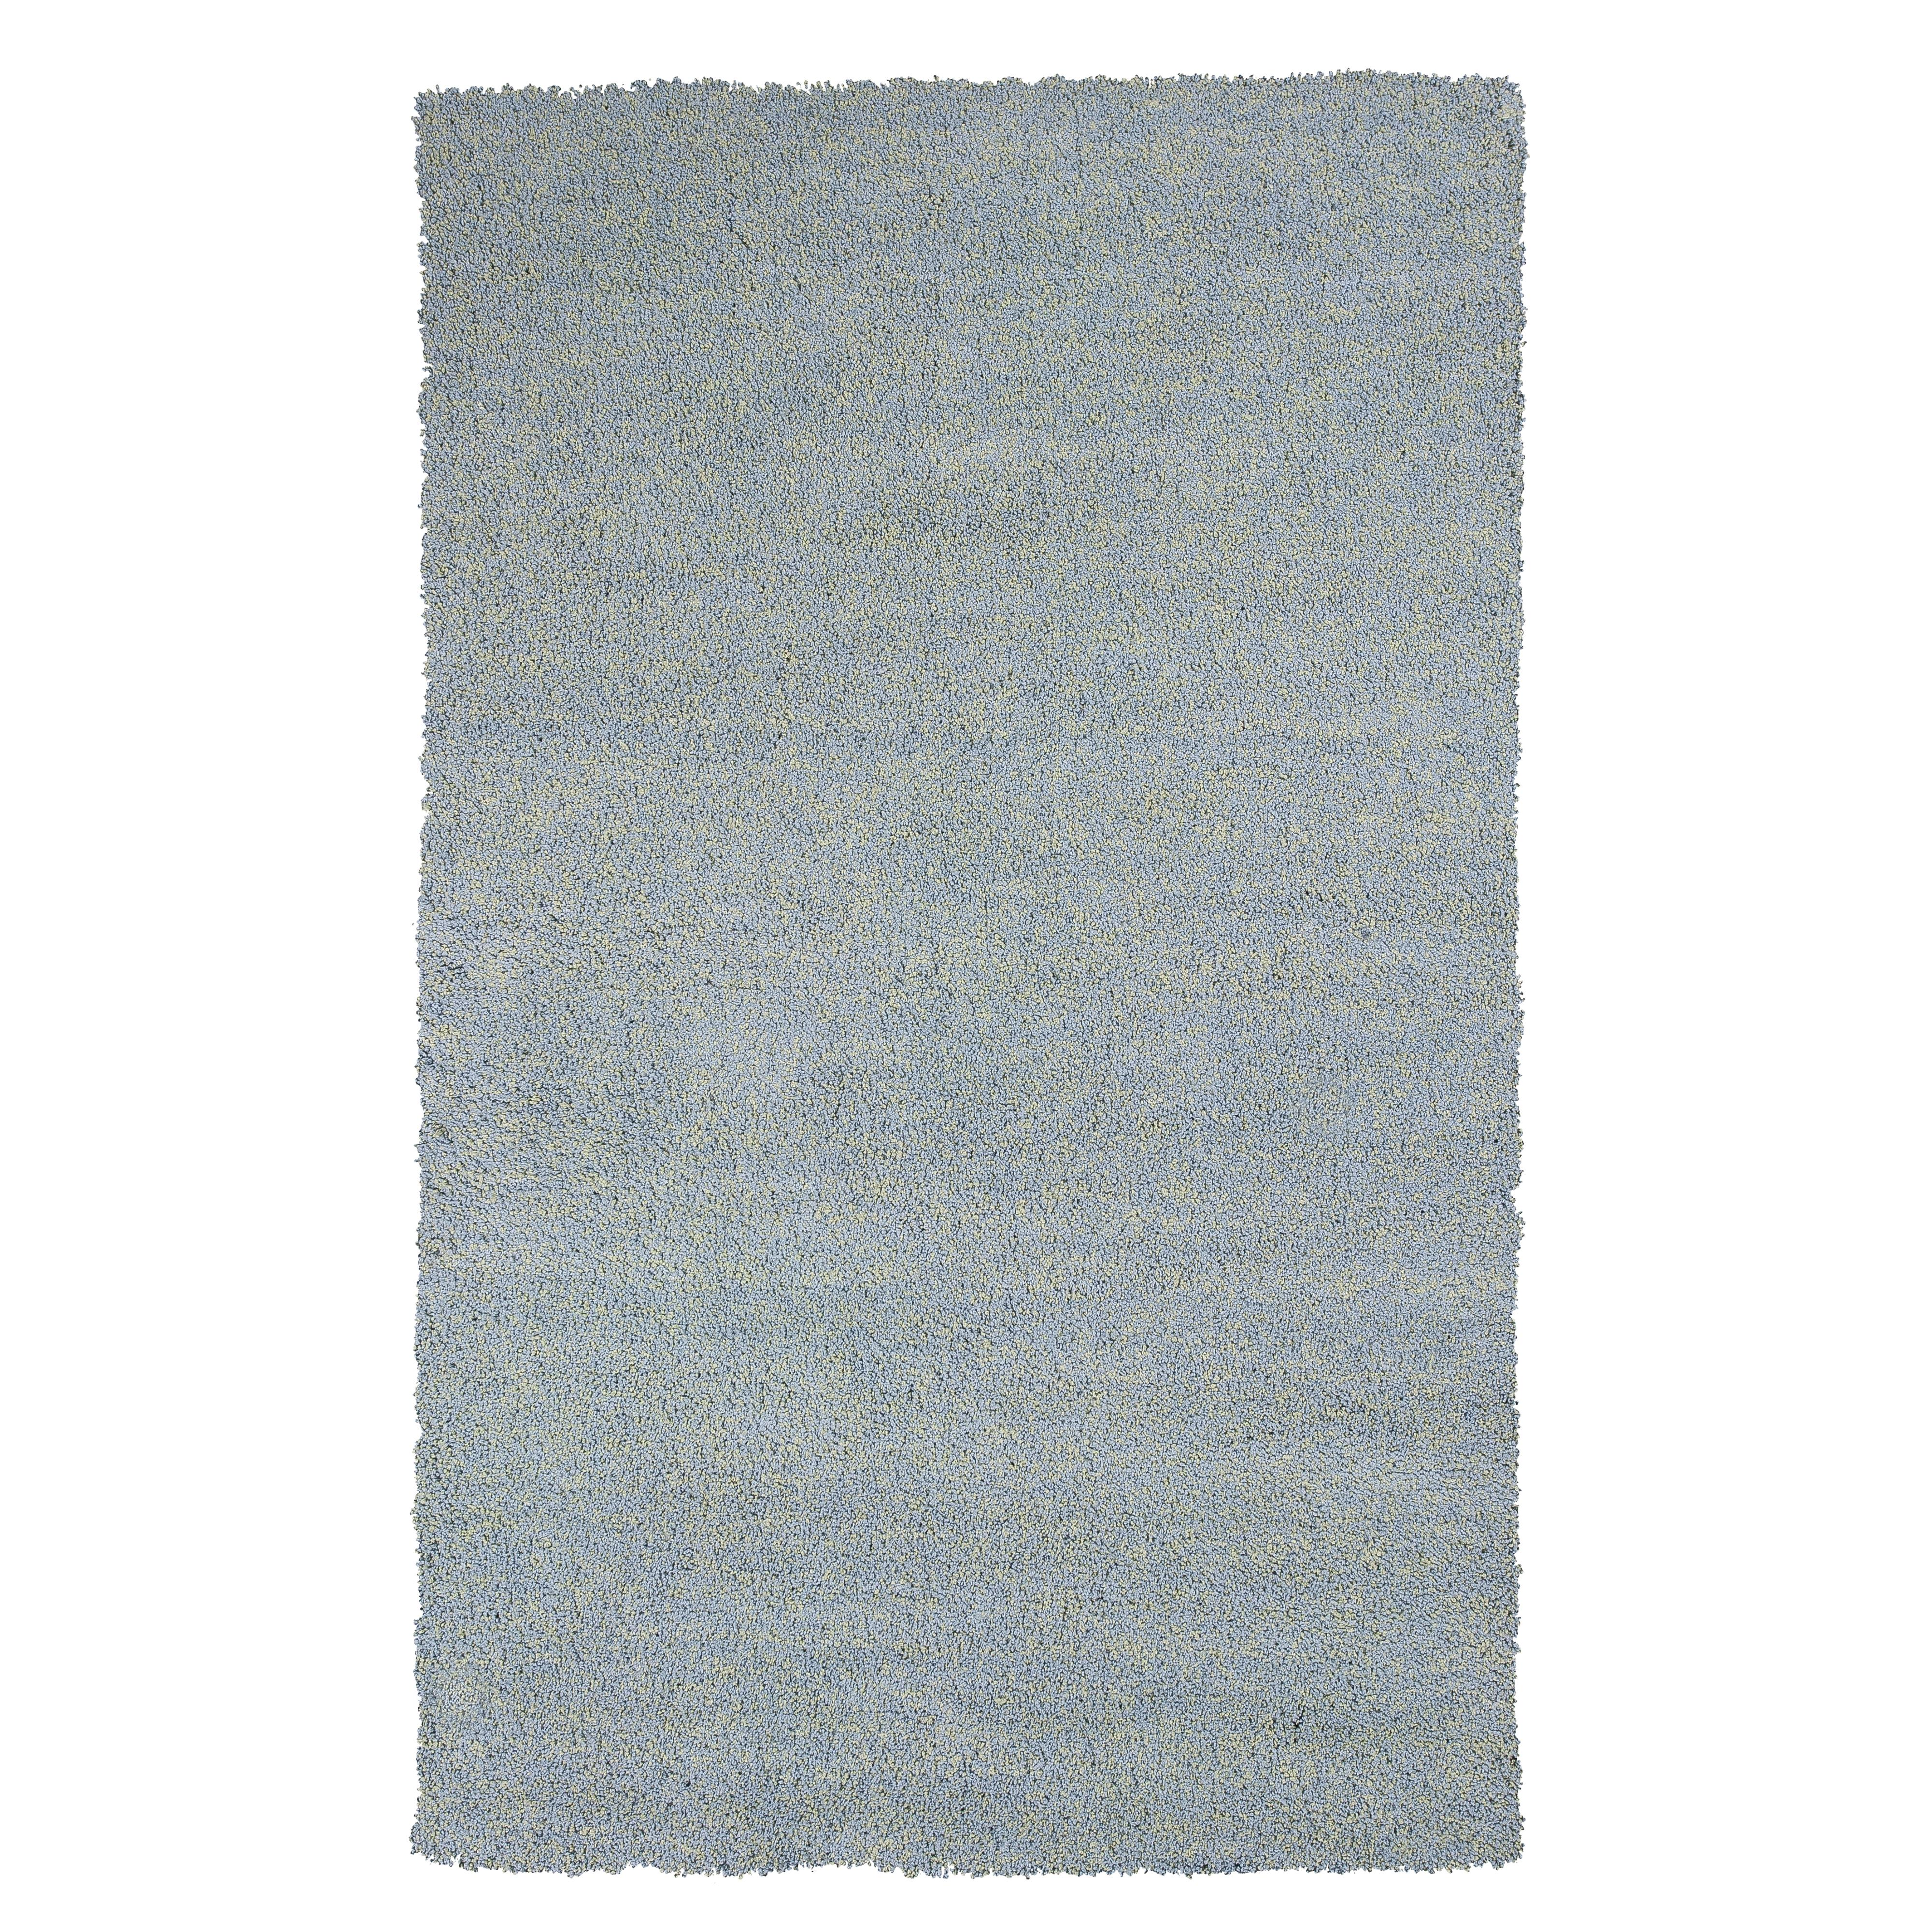 Bliss 5' X 7' Rug by Kas at Zak's Home